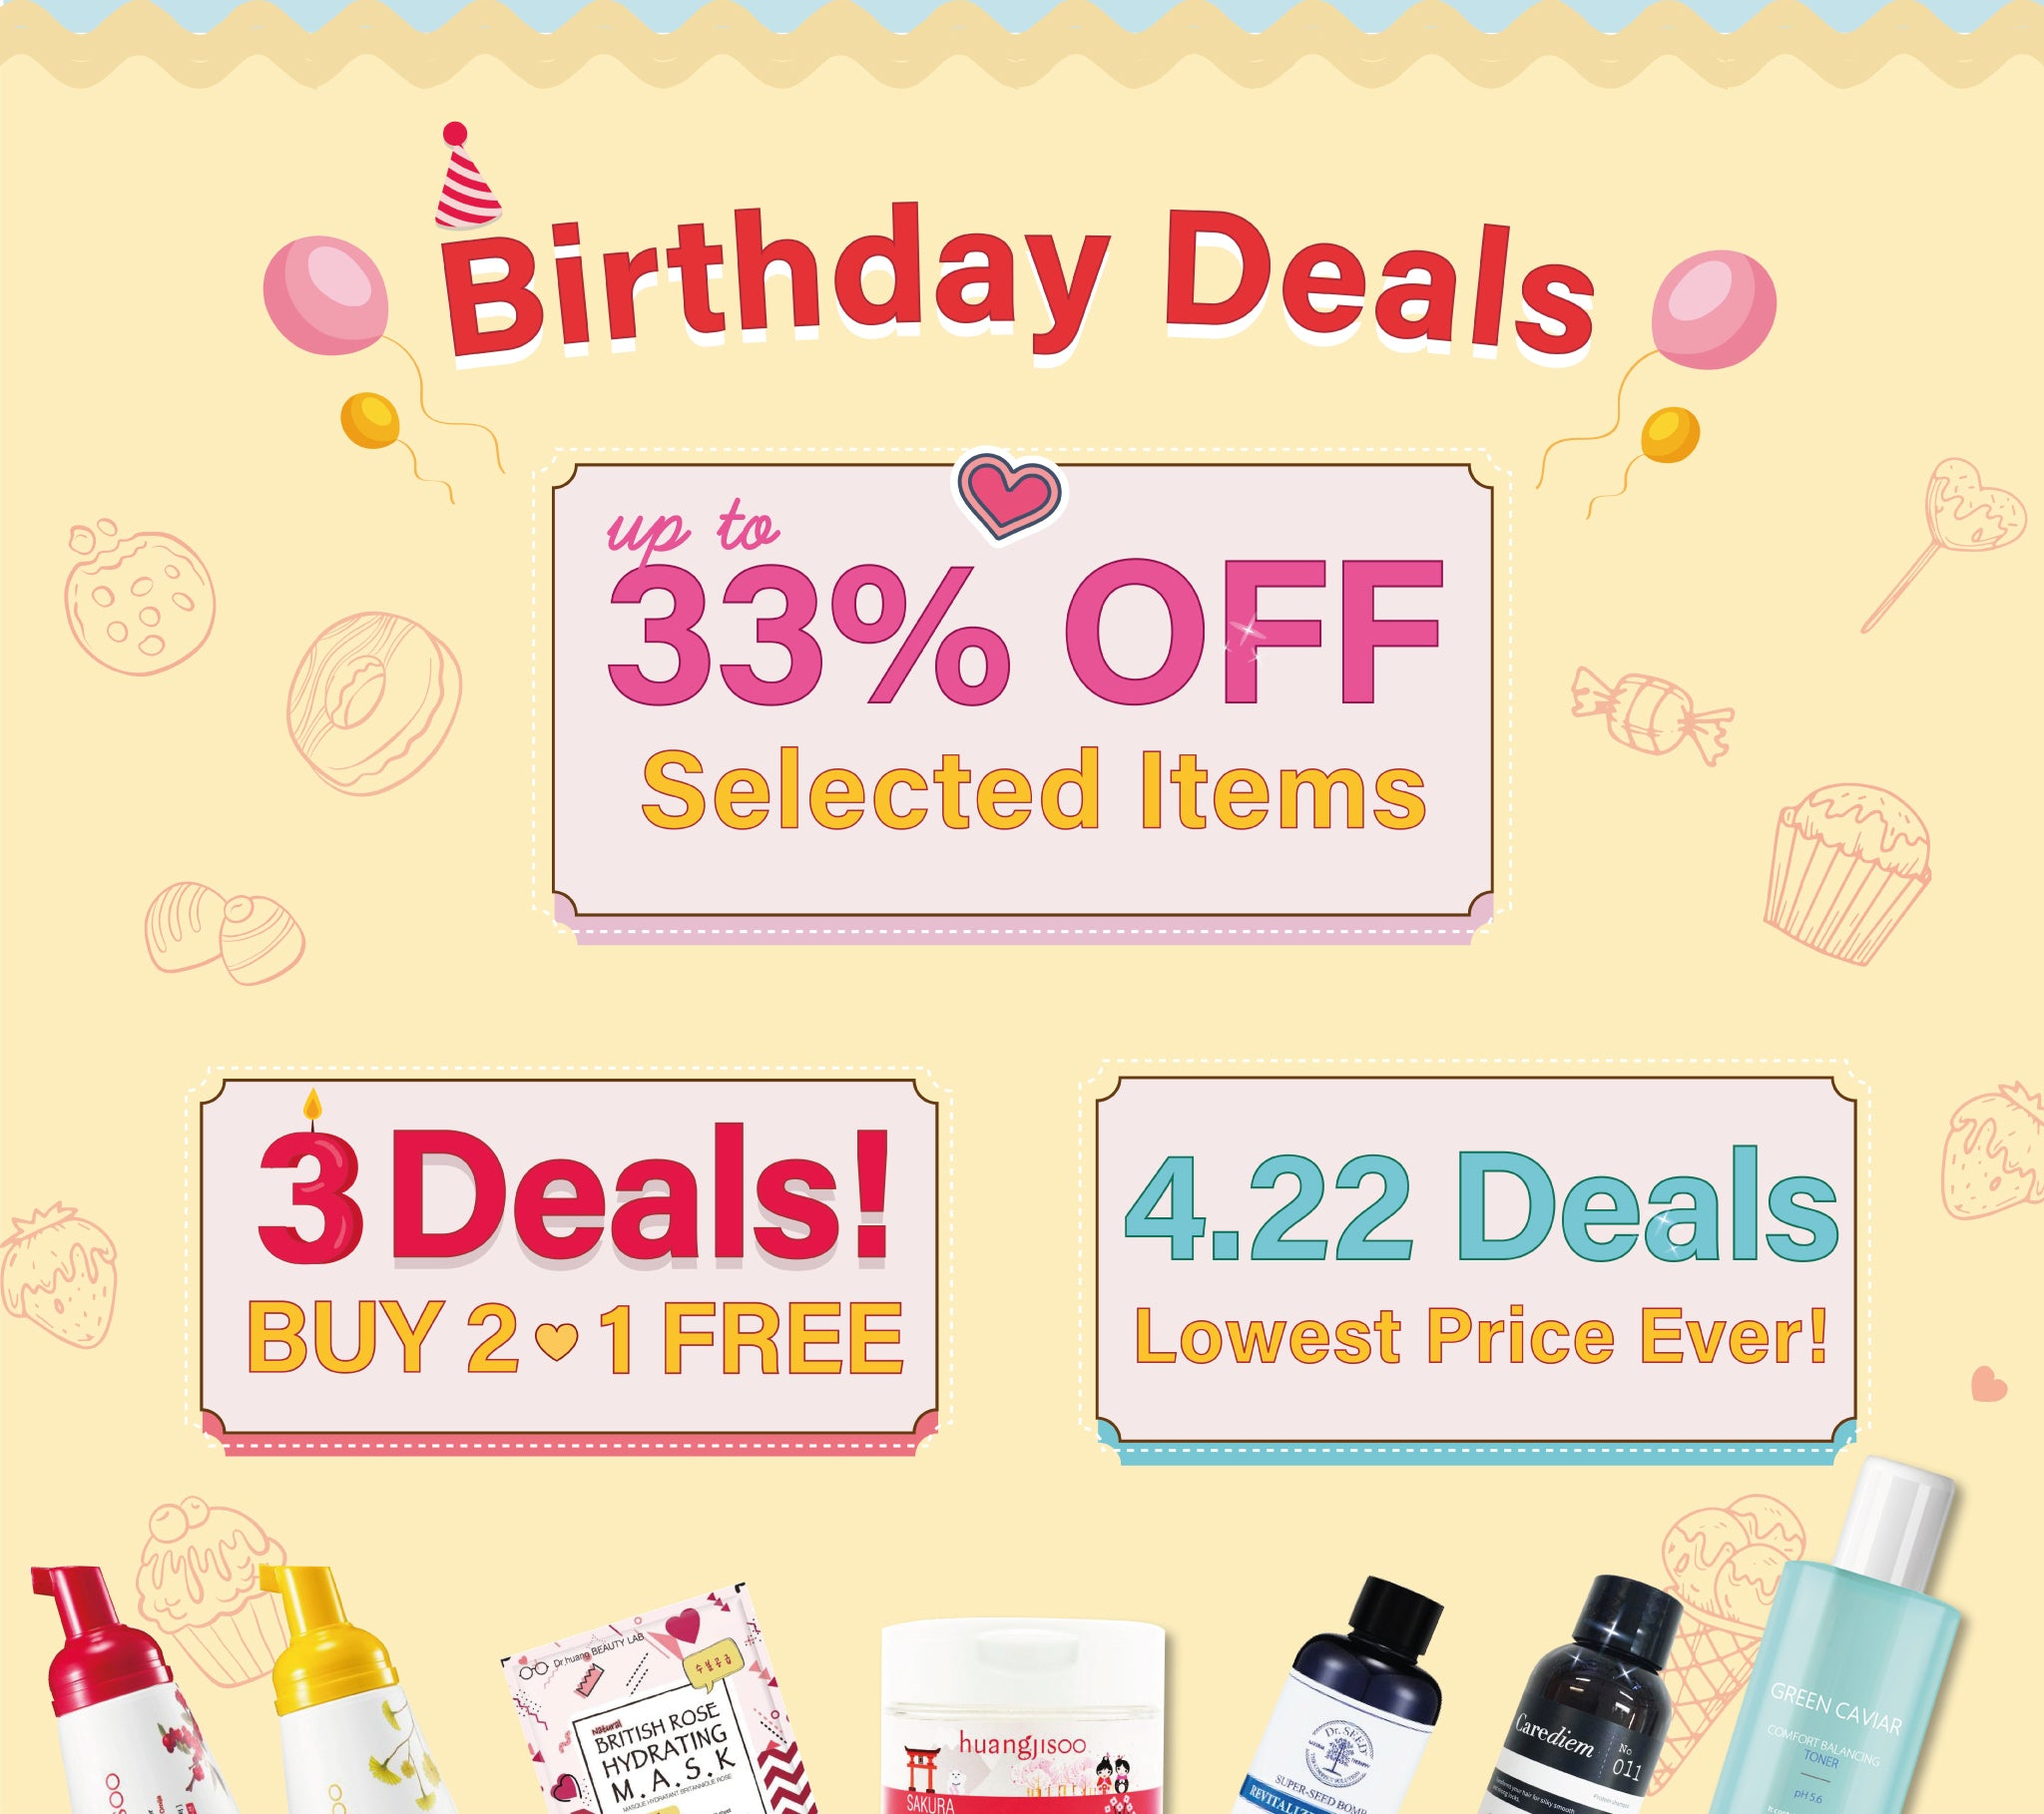 Check out our Amazing Birthday Deals!